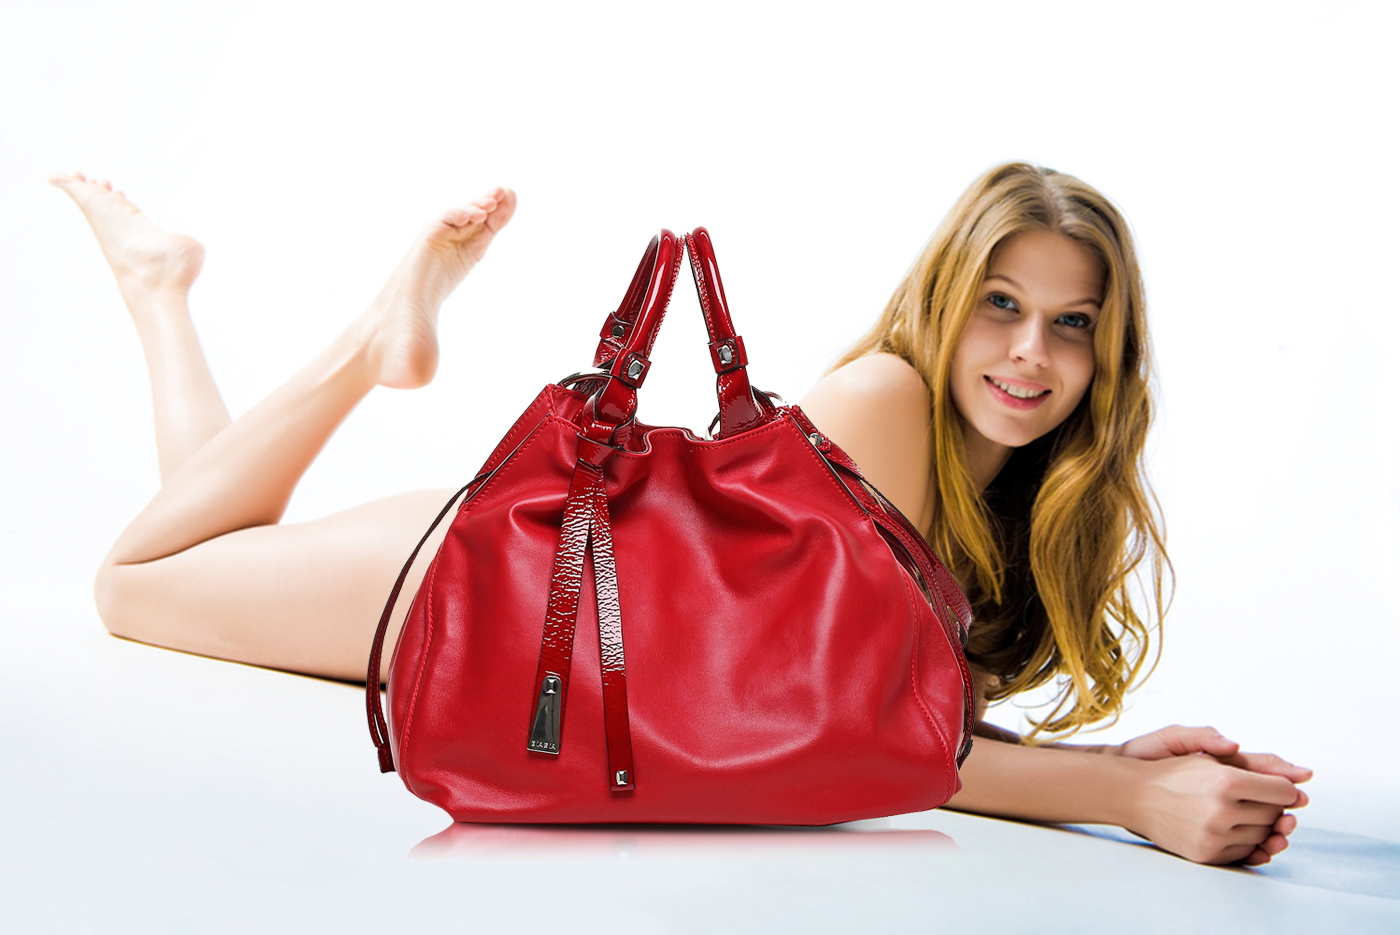 013-red-patent-leather-handbag